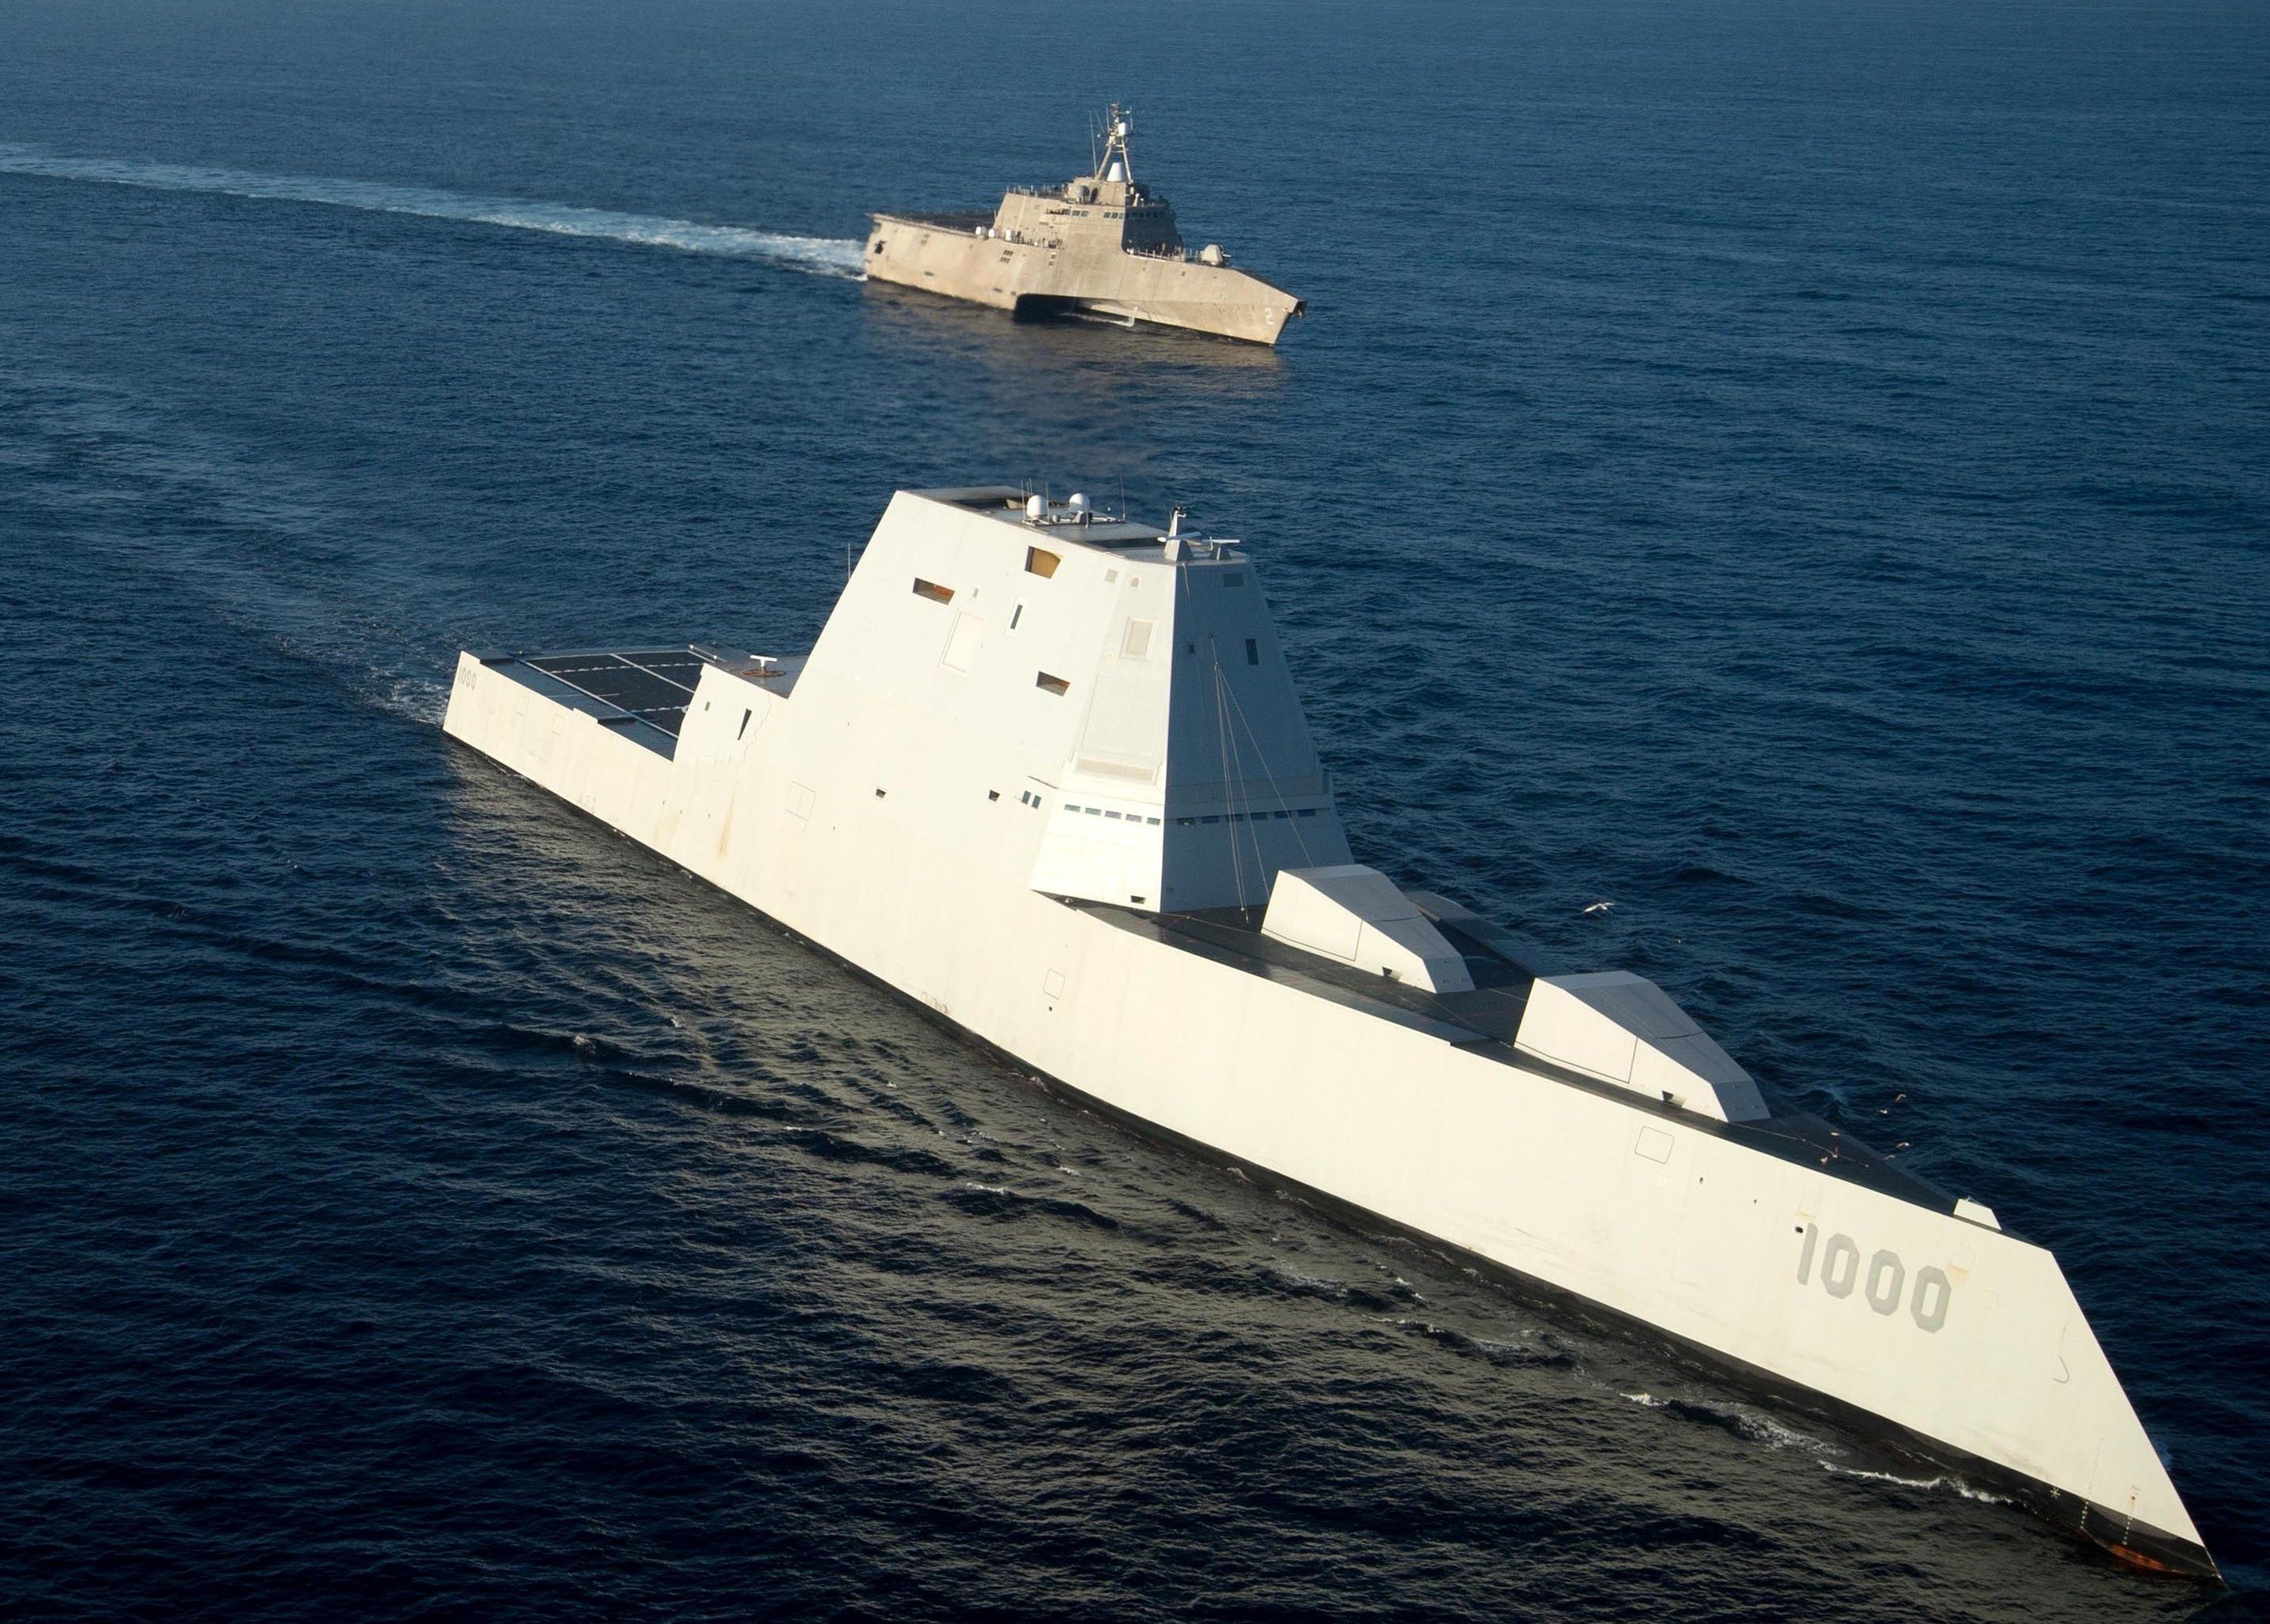 USS Zumwalt (DDG-1000) steams in formation with USS Independence (LCS-2) on Dec. 8, 2016. US Navy Photo